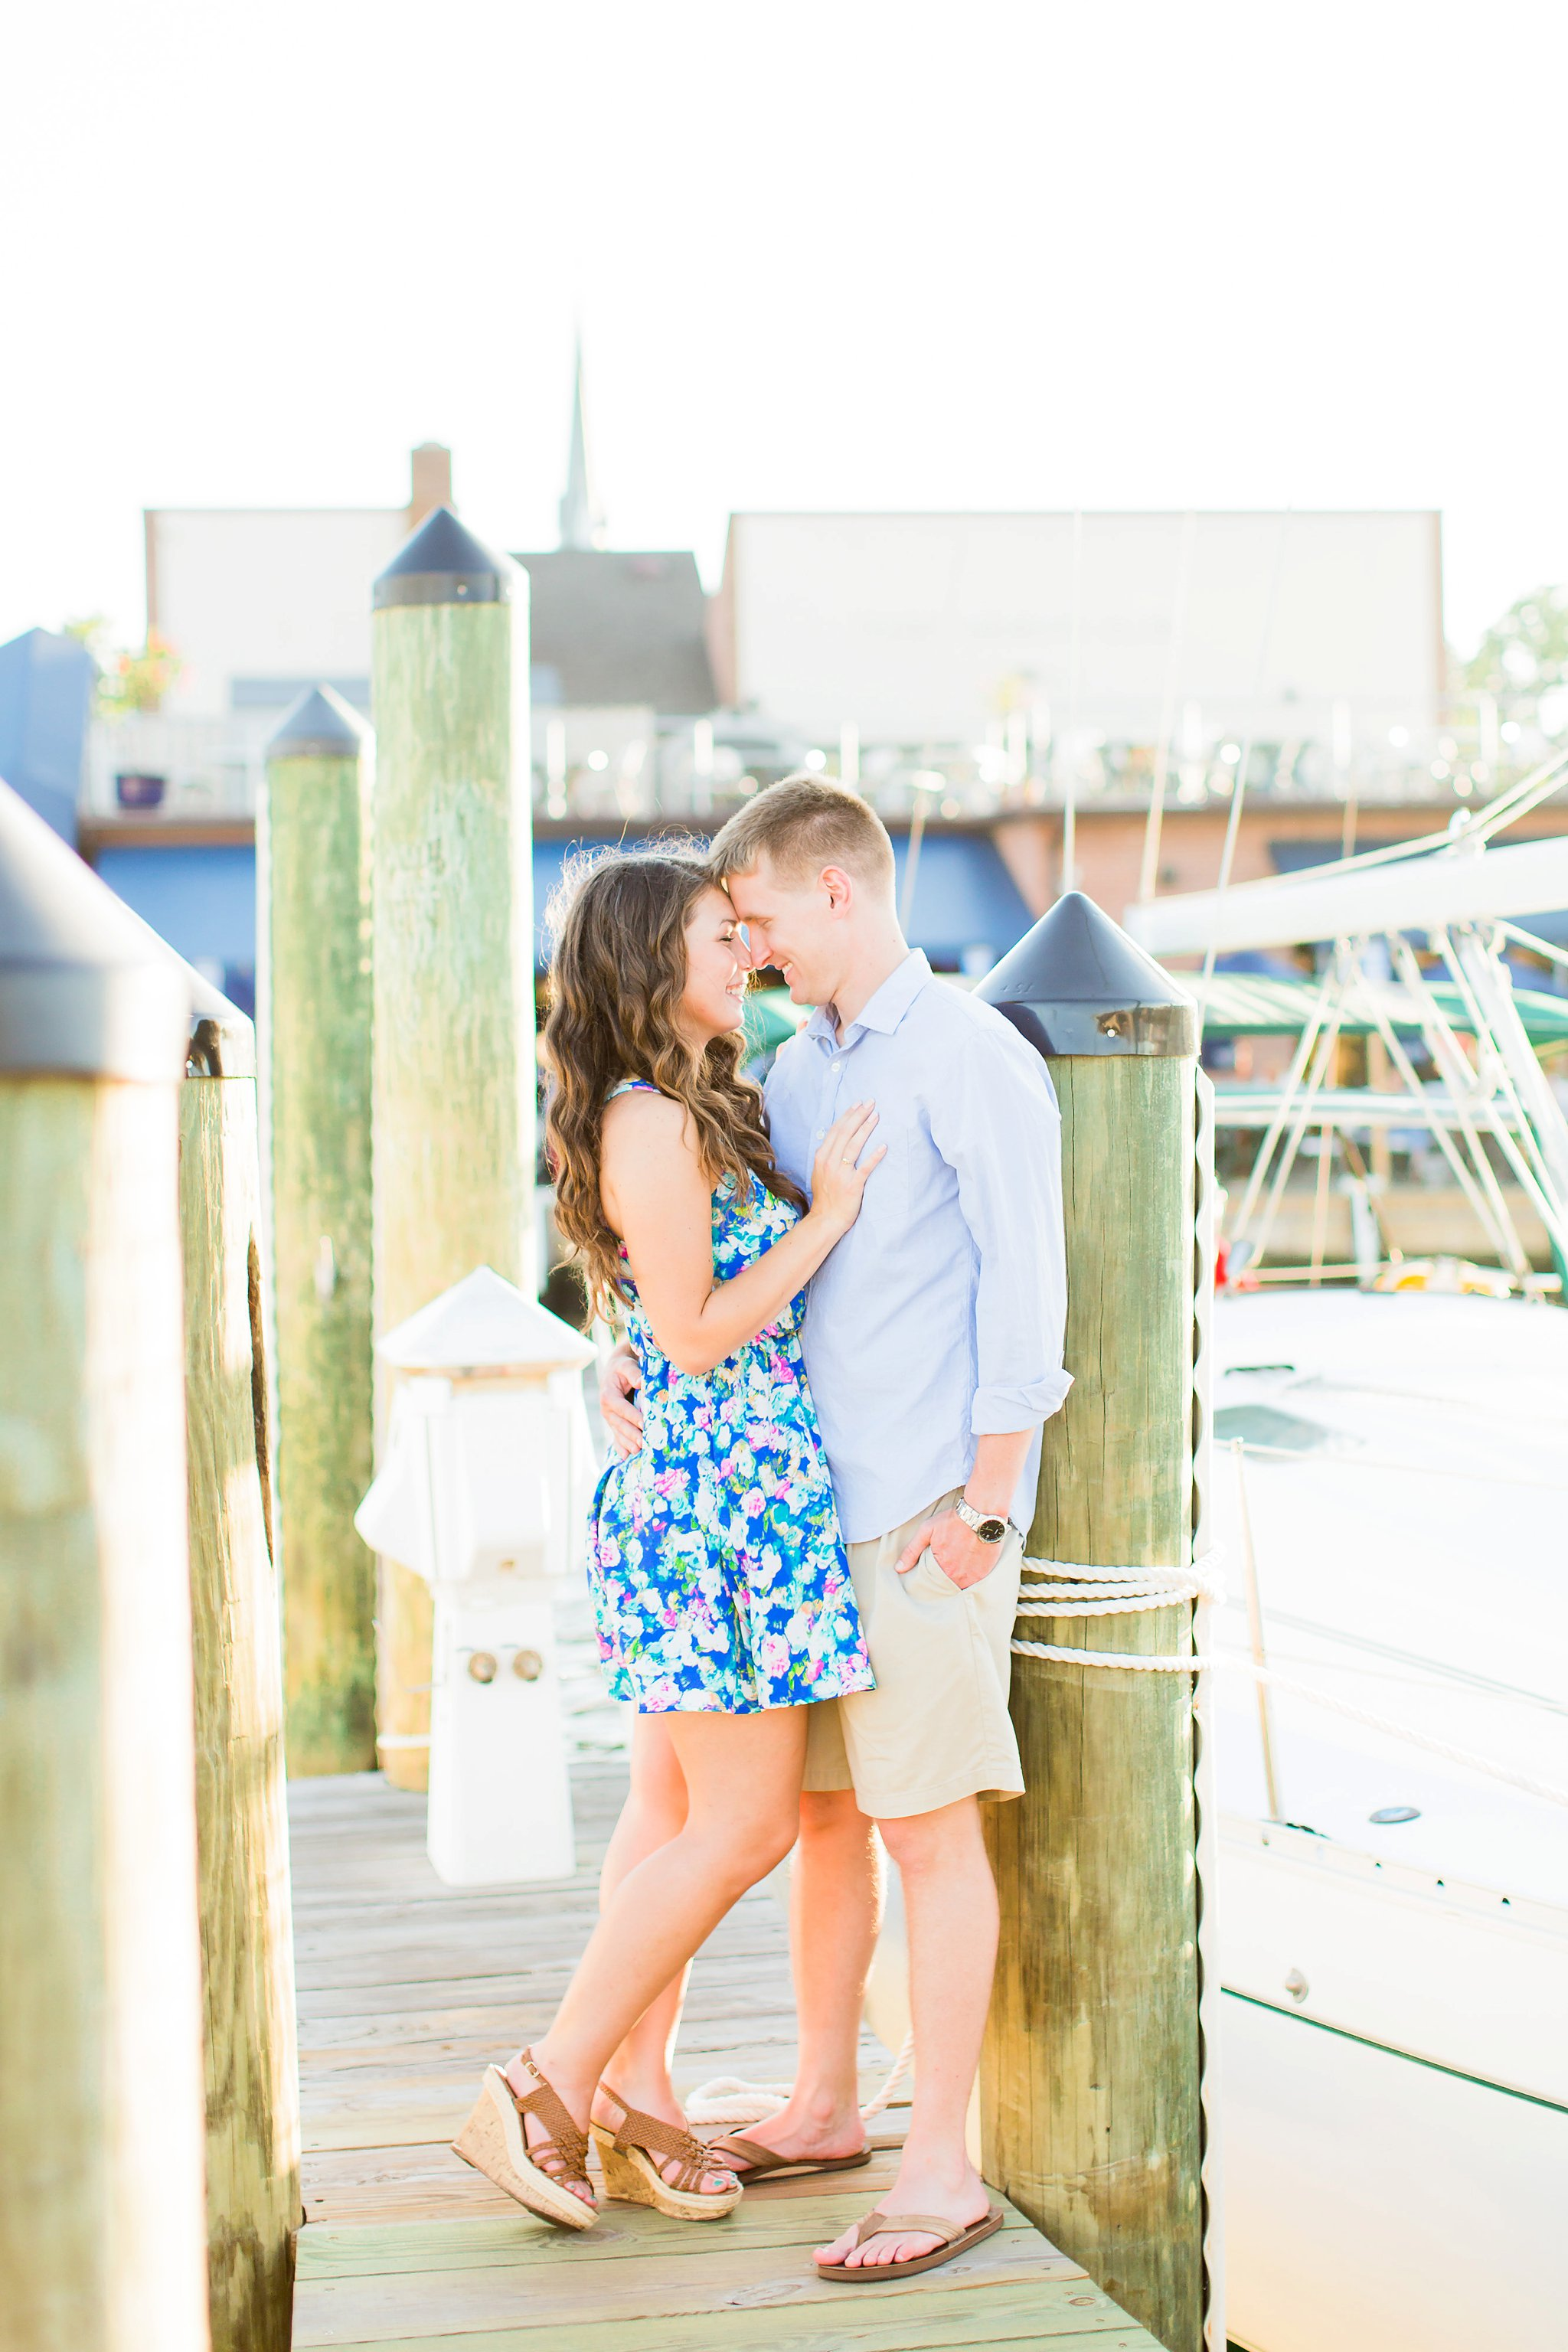 Downtown Annapolis Engagement Photos Maryland Wedding Photographer Megan Kelsey Photography Sam & Angela-122.jpg